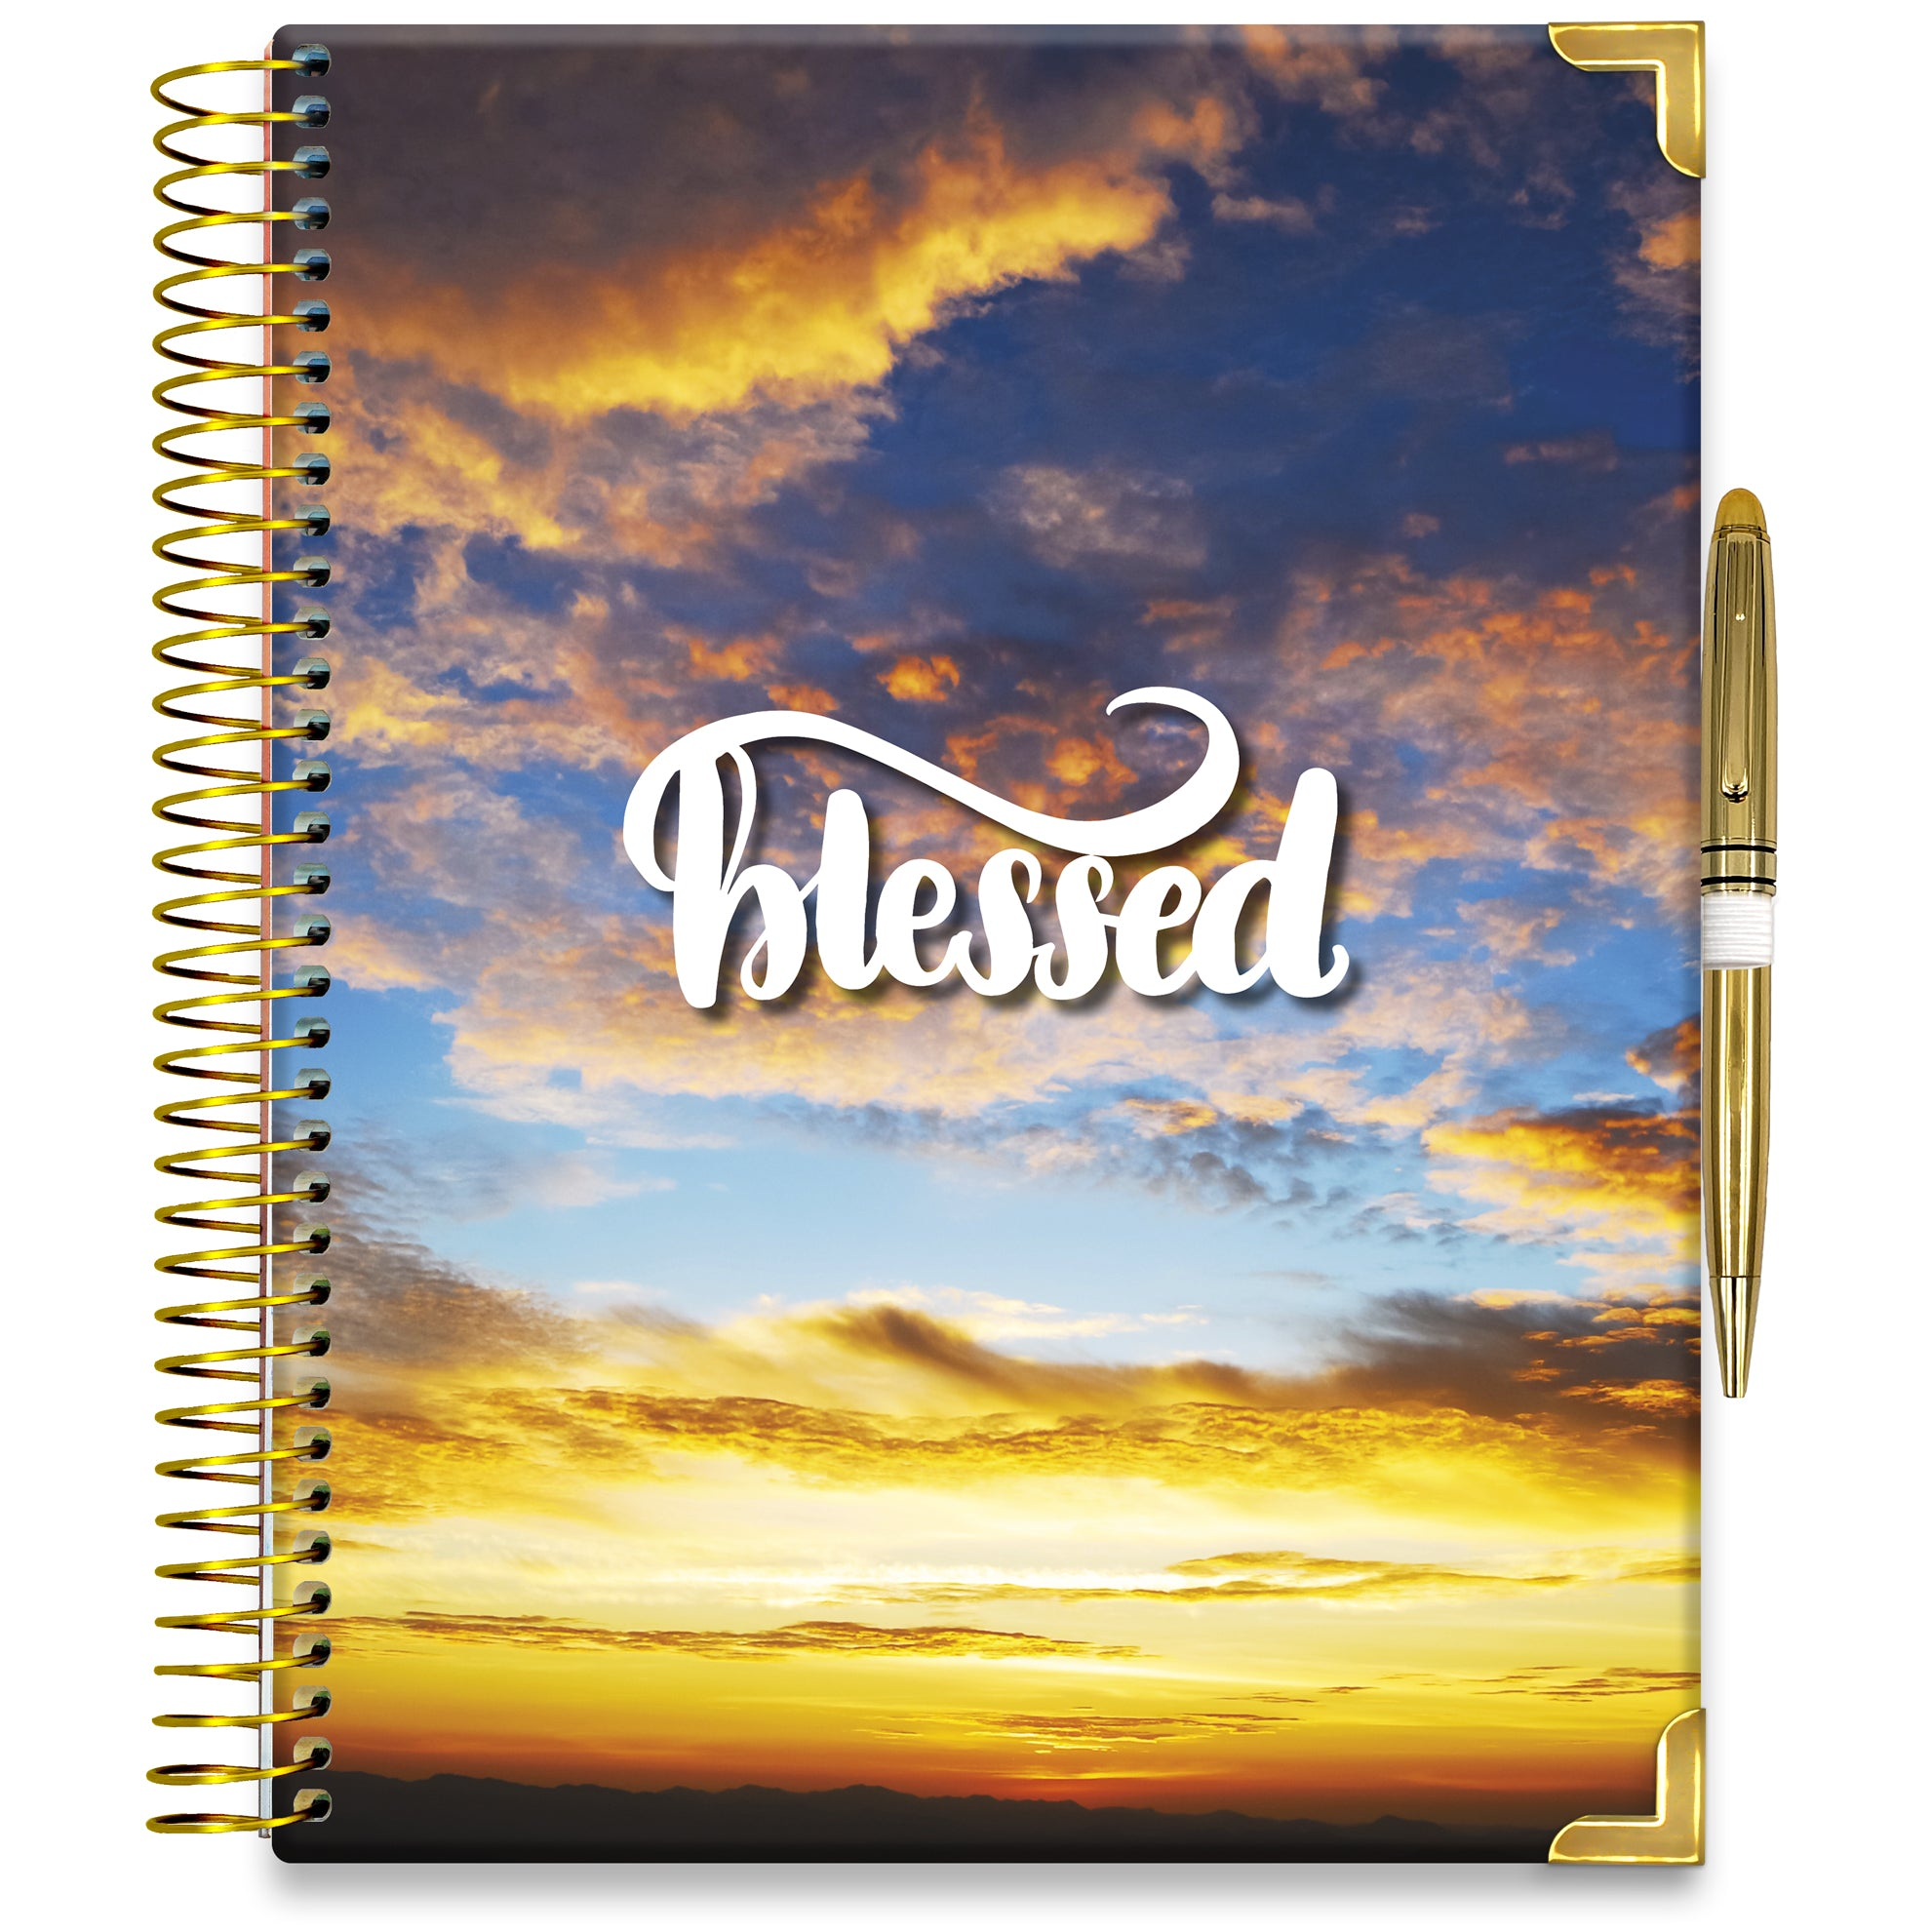 PRE-ORDER: APRIL 2021-2022 Planner - 15M Academic Year - Pro-Edition - 8.5x11 Hardcover - Blessed Blue Sky Cover